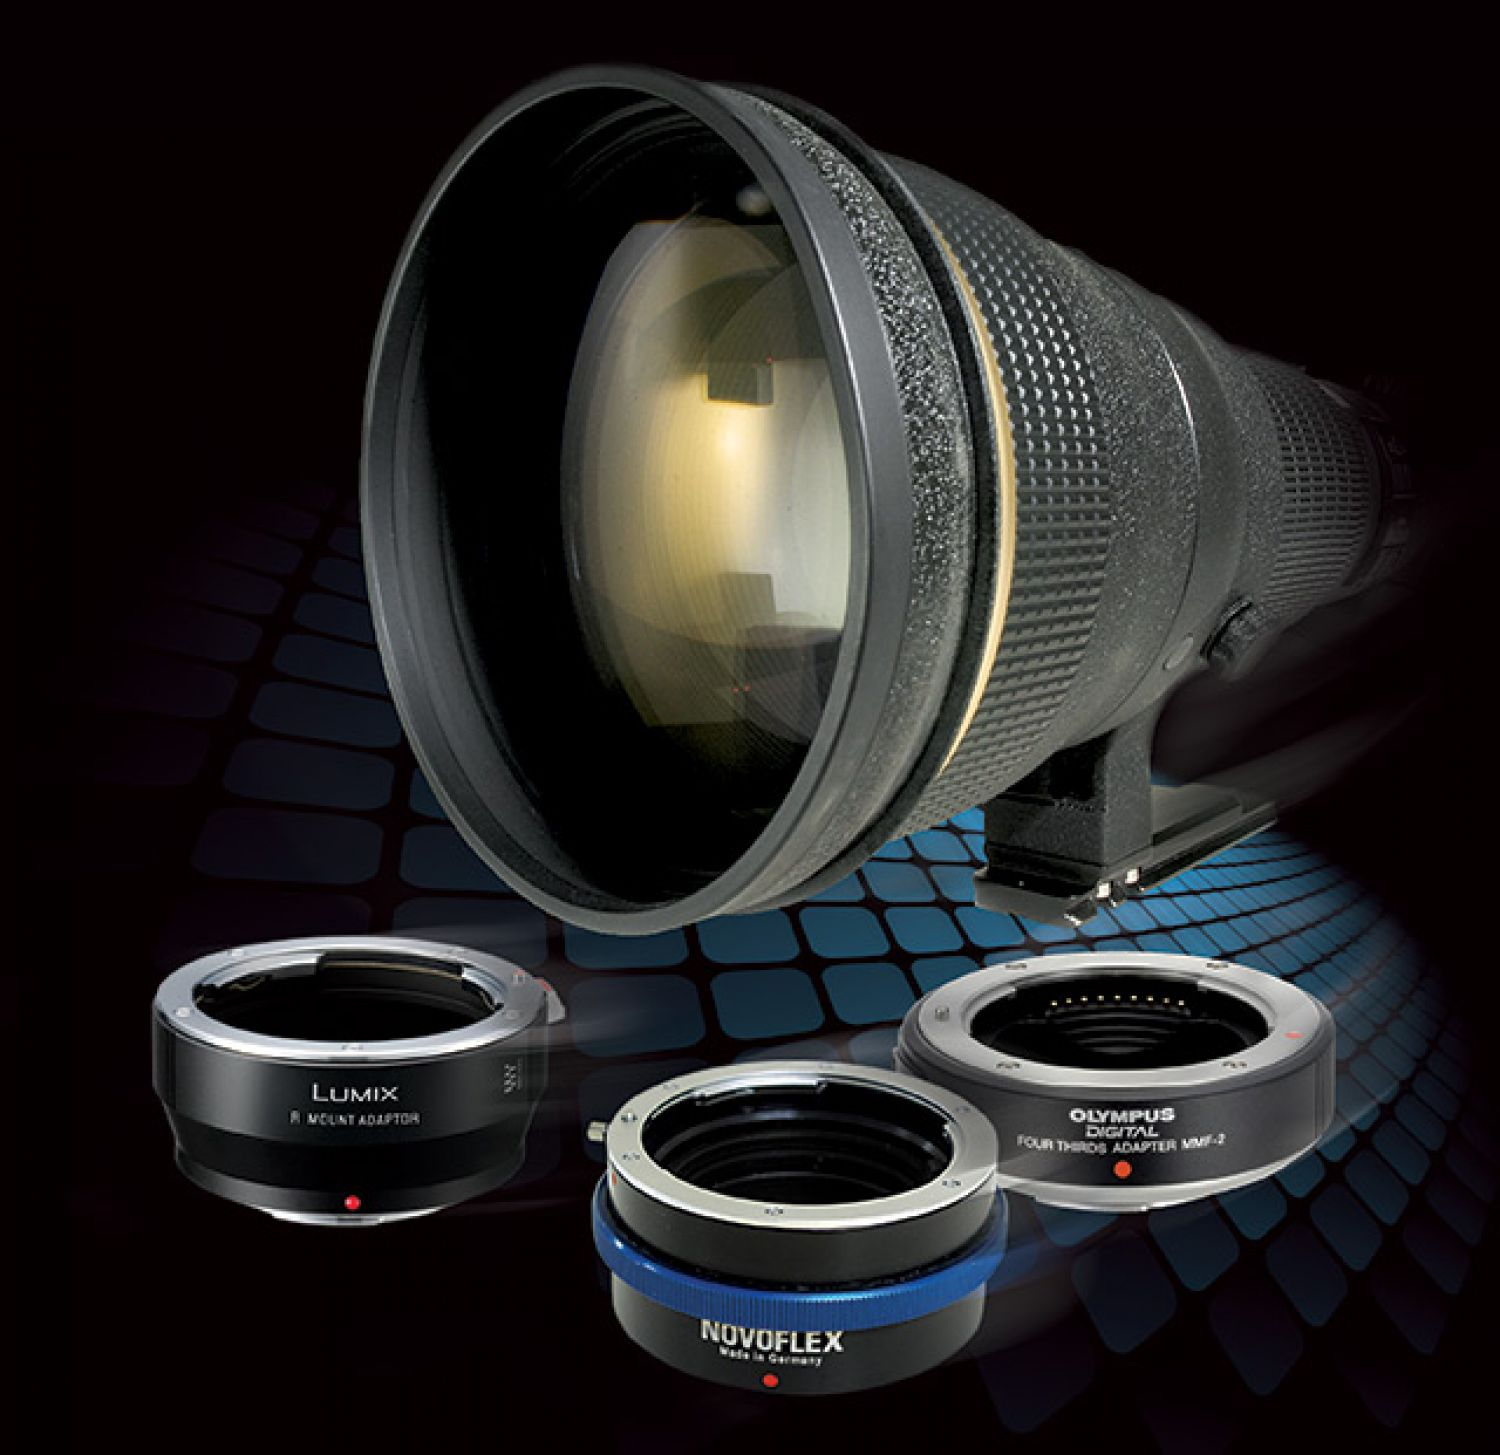 The Panasonic Lumix DMW-MA3R (for Leica R lenses), Novoflex MFT-NIK (for Nikon SLR lenses) and Olympus MMF-2 (for Four Thirds System lenses). The Micro Four Thirds System gives a pro the potential to have a very compact backup or a dedicated HD video body. Combined with an adapter, you can make use of your primary system's lenses on that backup or dedicated video body, including favorite older lenses that you may hold in particularly high esteem.